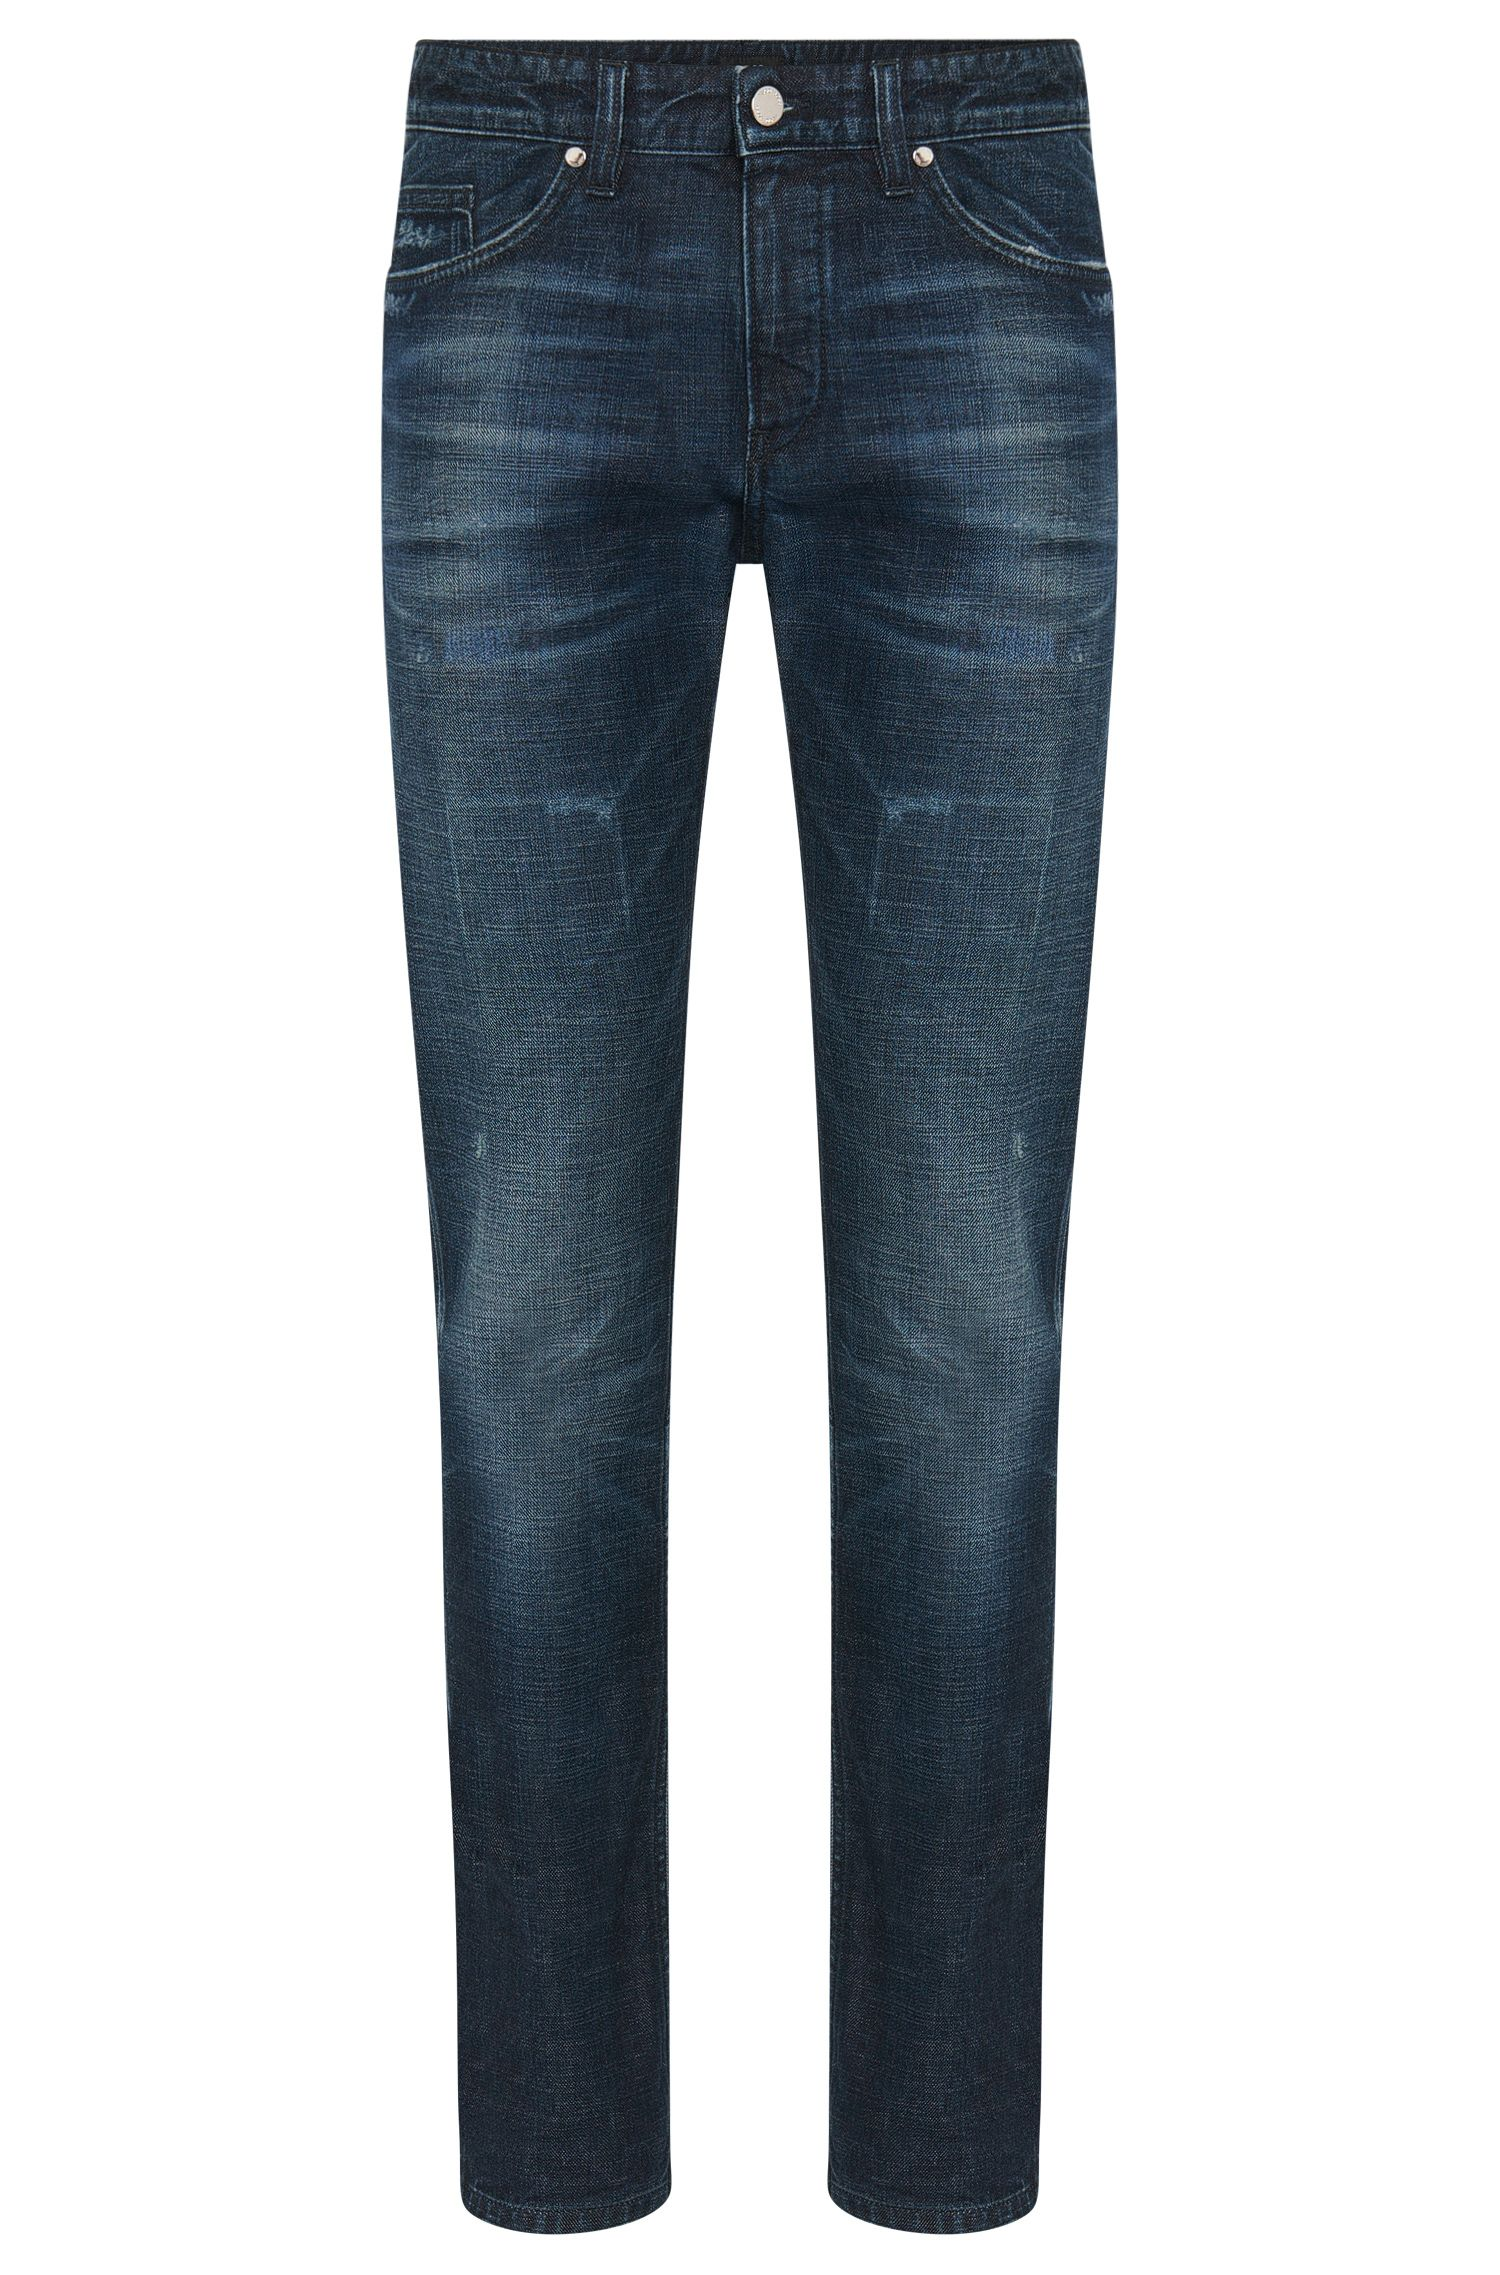 Slim-Fit Jeans aus Stretch-Baumwolle mit Used-Waschung: 'Delaware3'